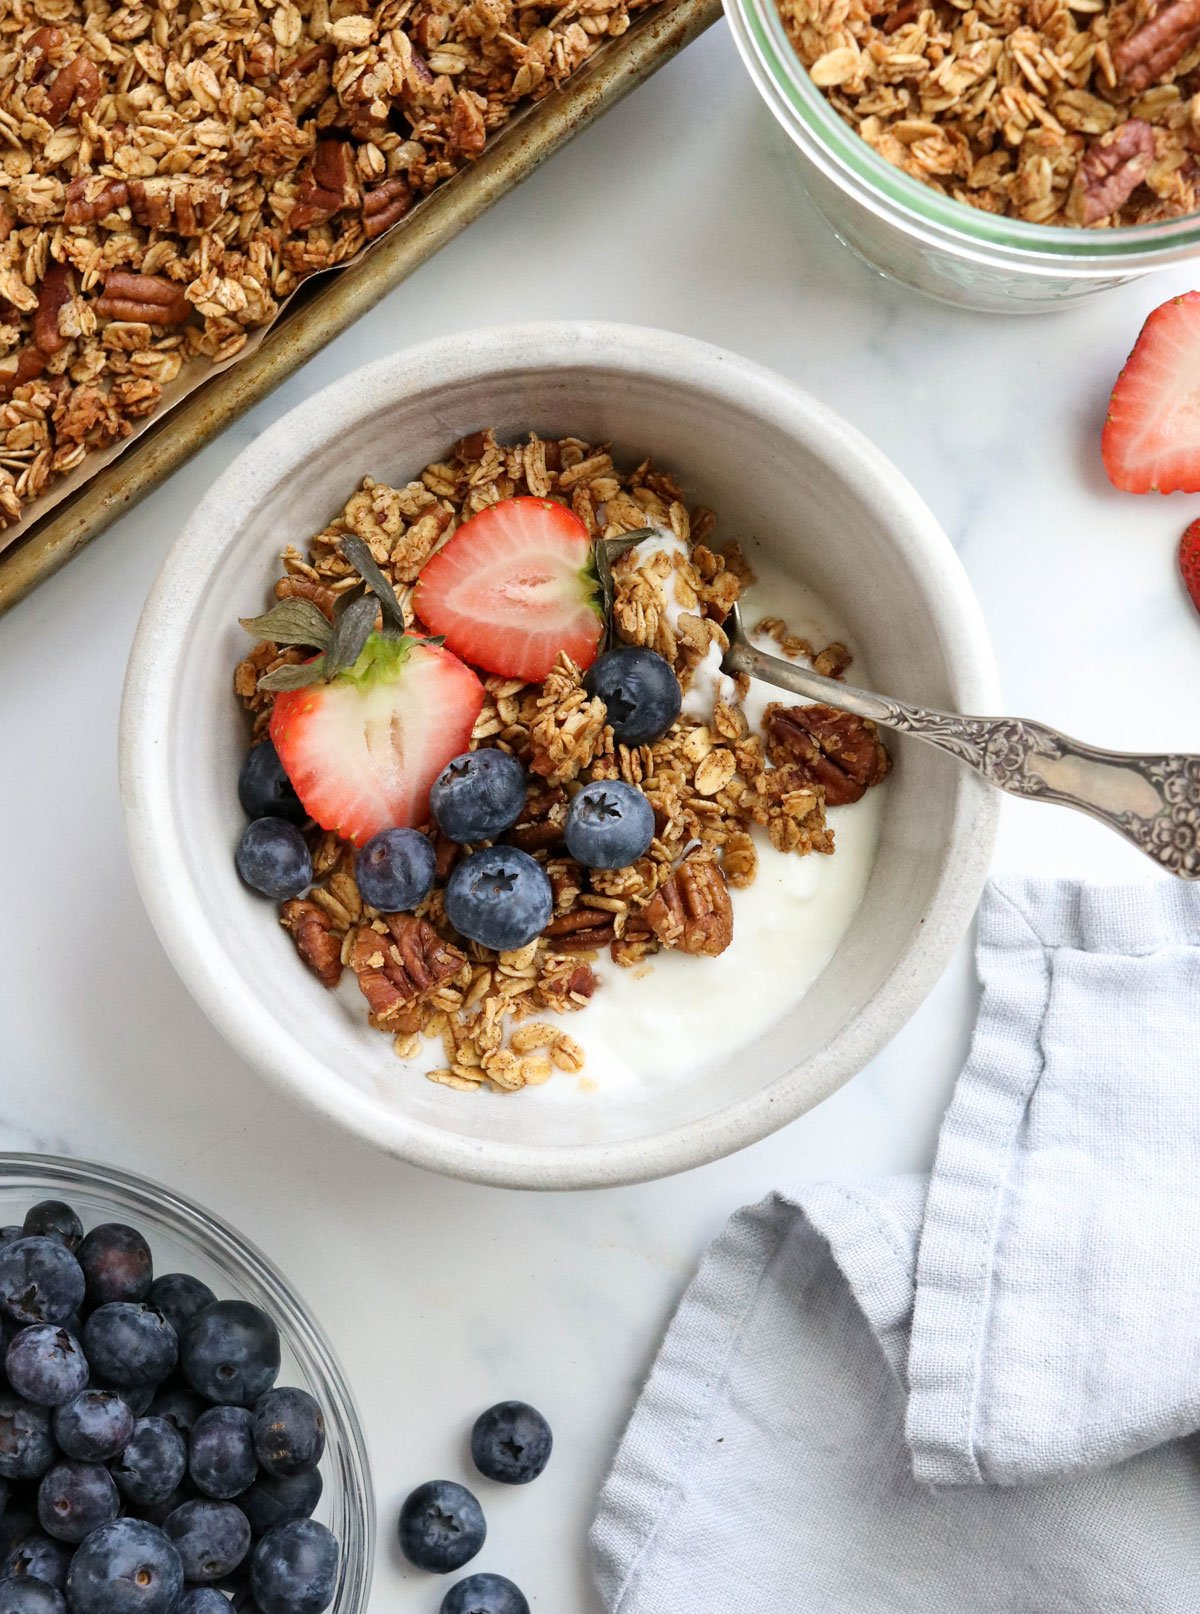 healthy gluten-free granola recipe (no oil or nuts)